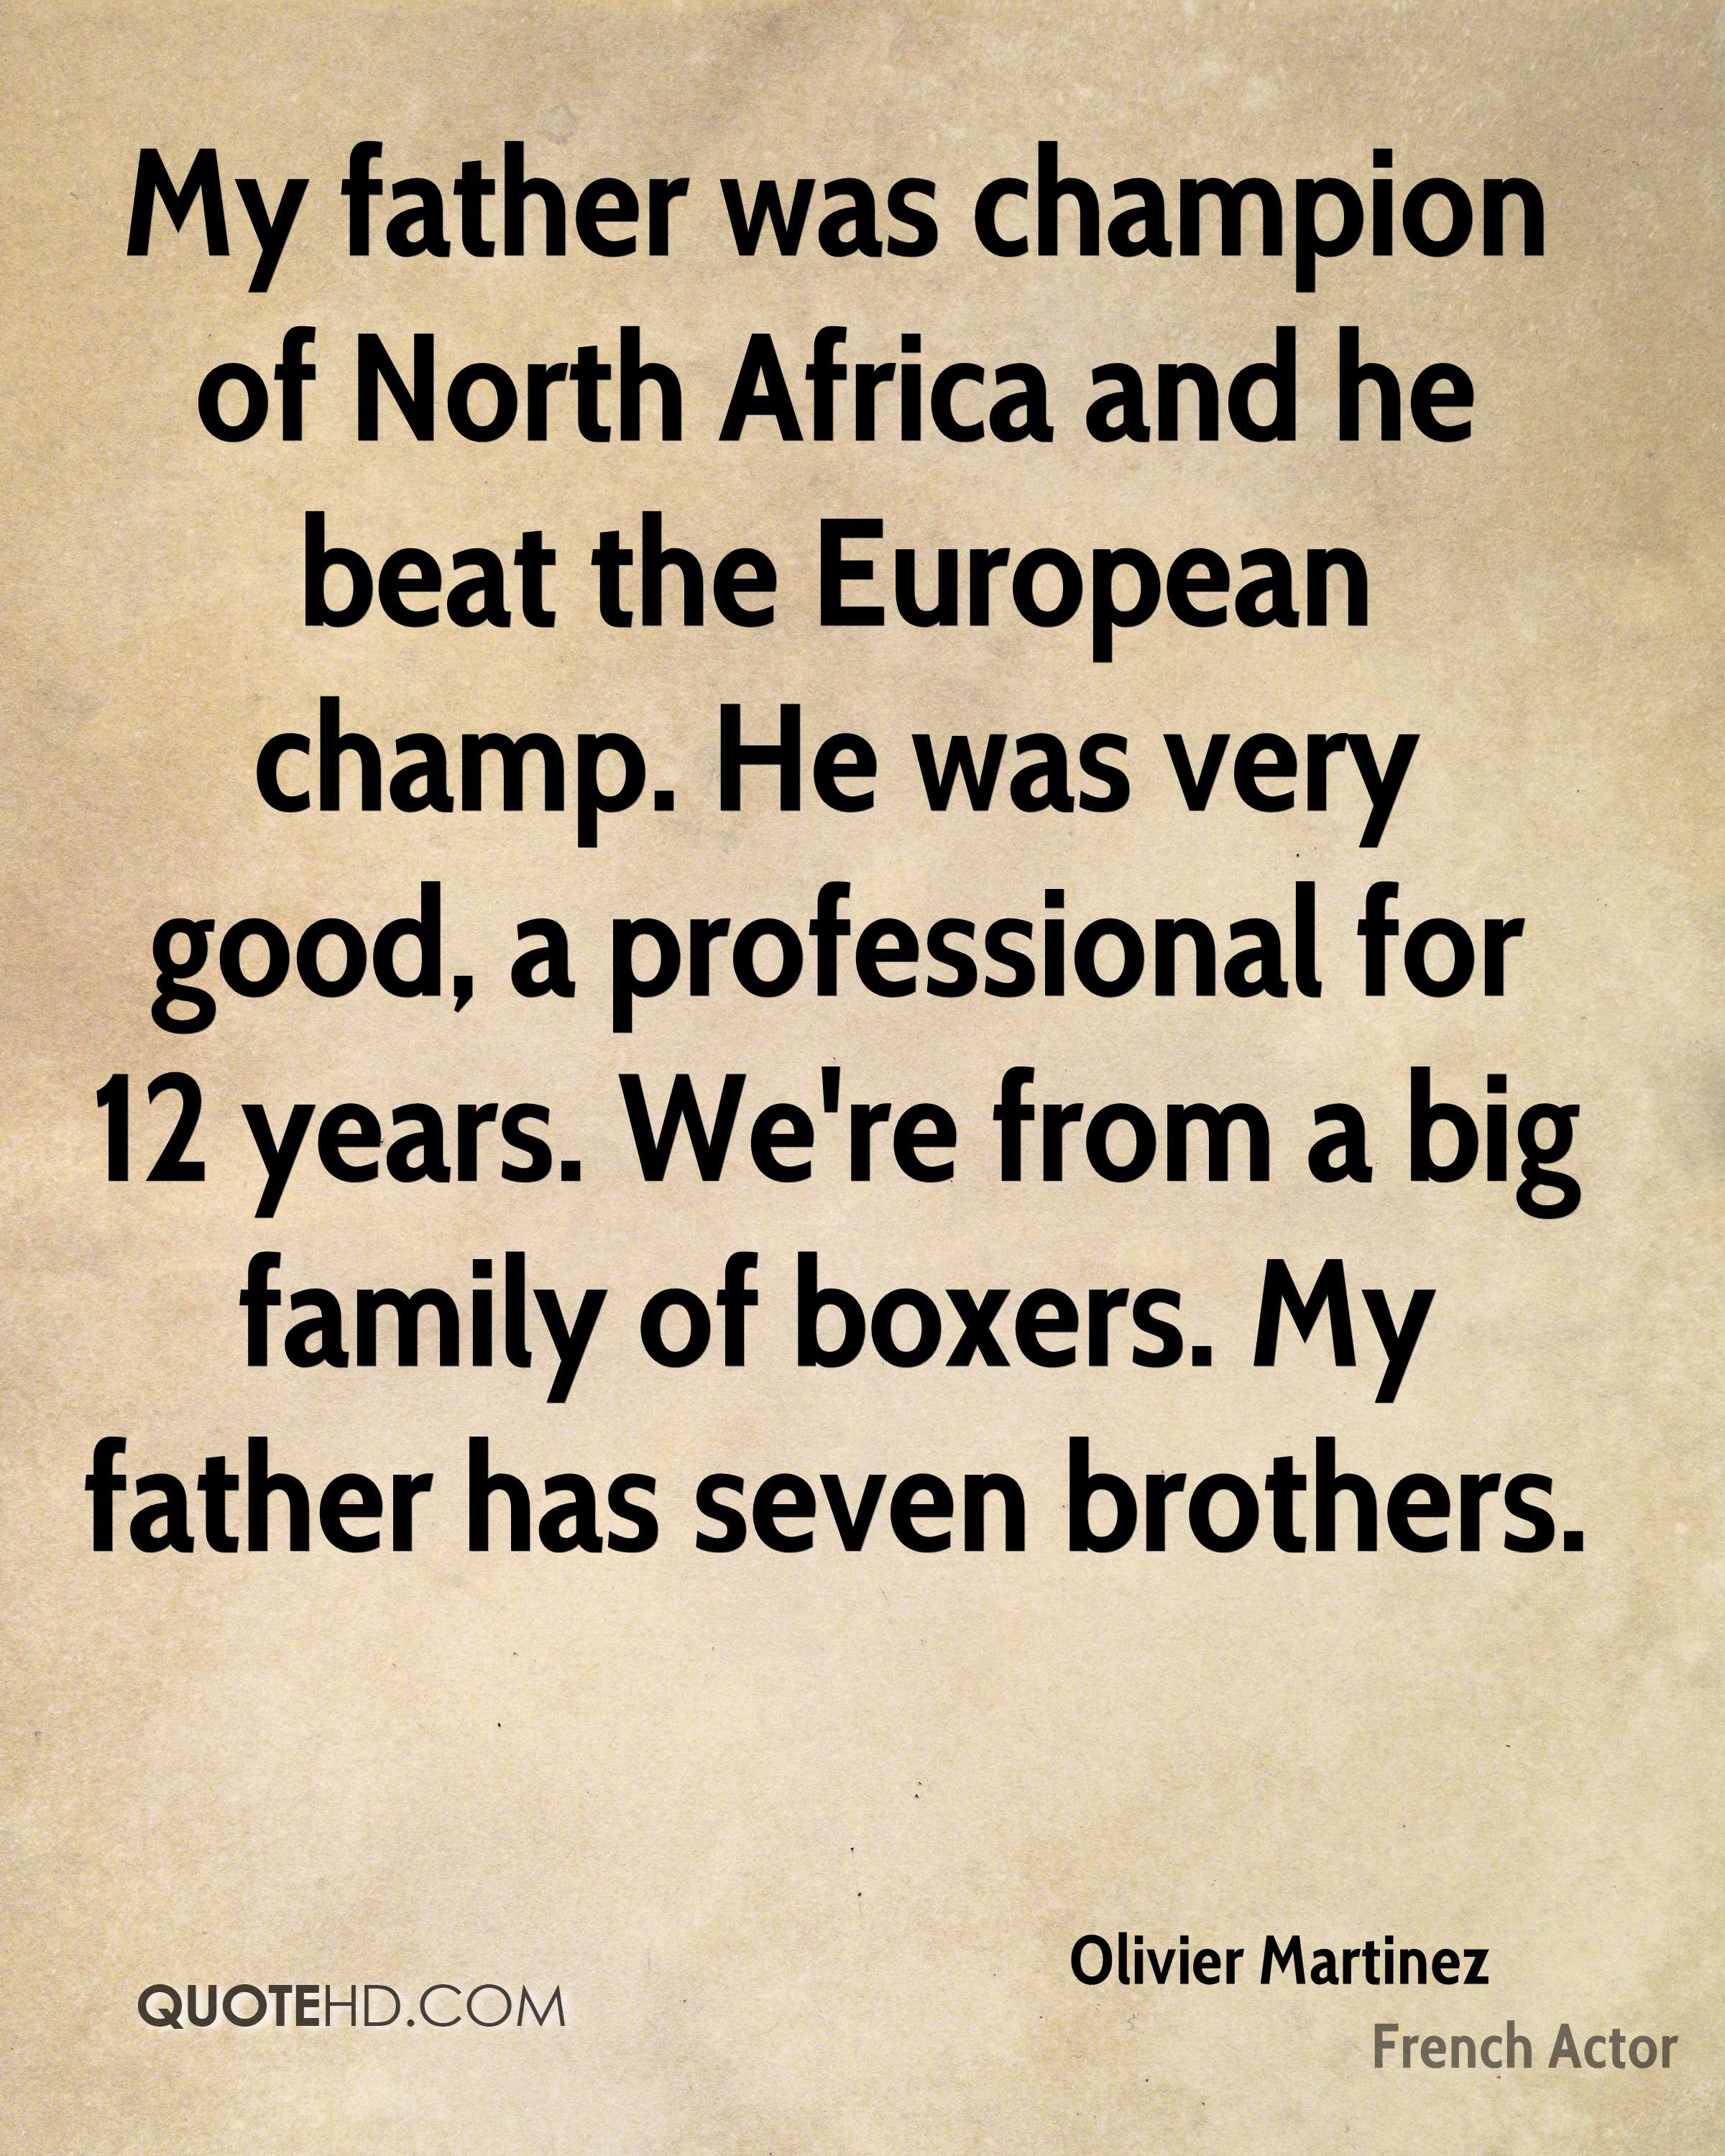 My father was champion of North Africa and he beat the European champ. He was very good, a professional for 12 years. We're from a big family of boxers. My father has seven brothers.